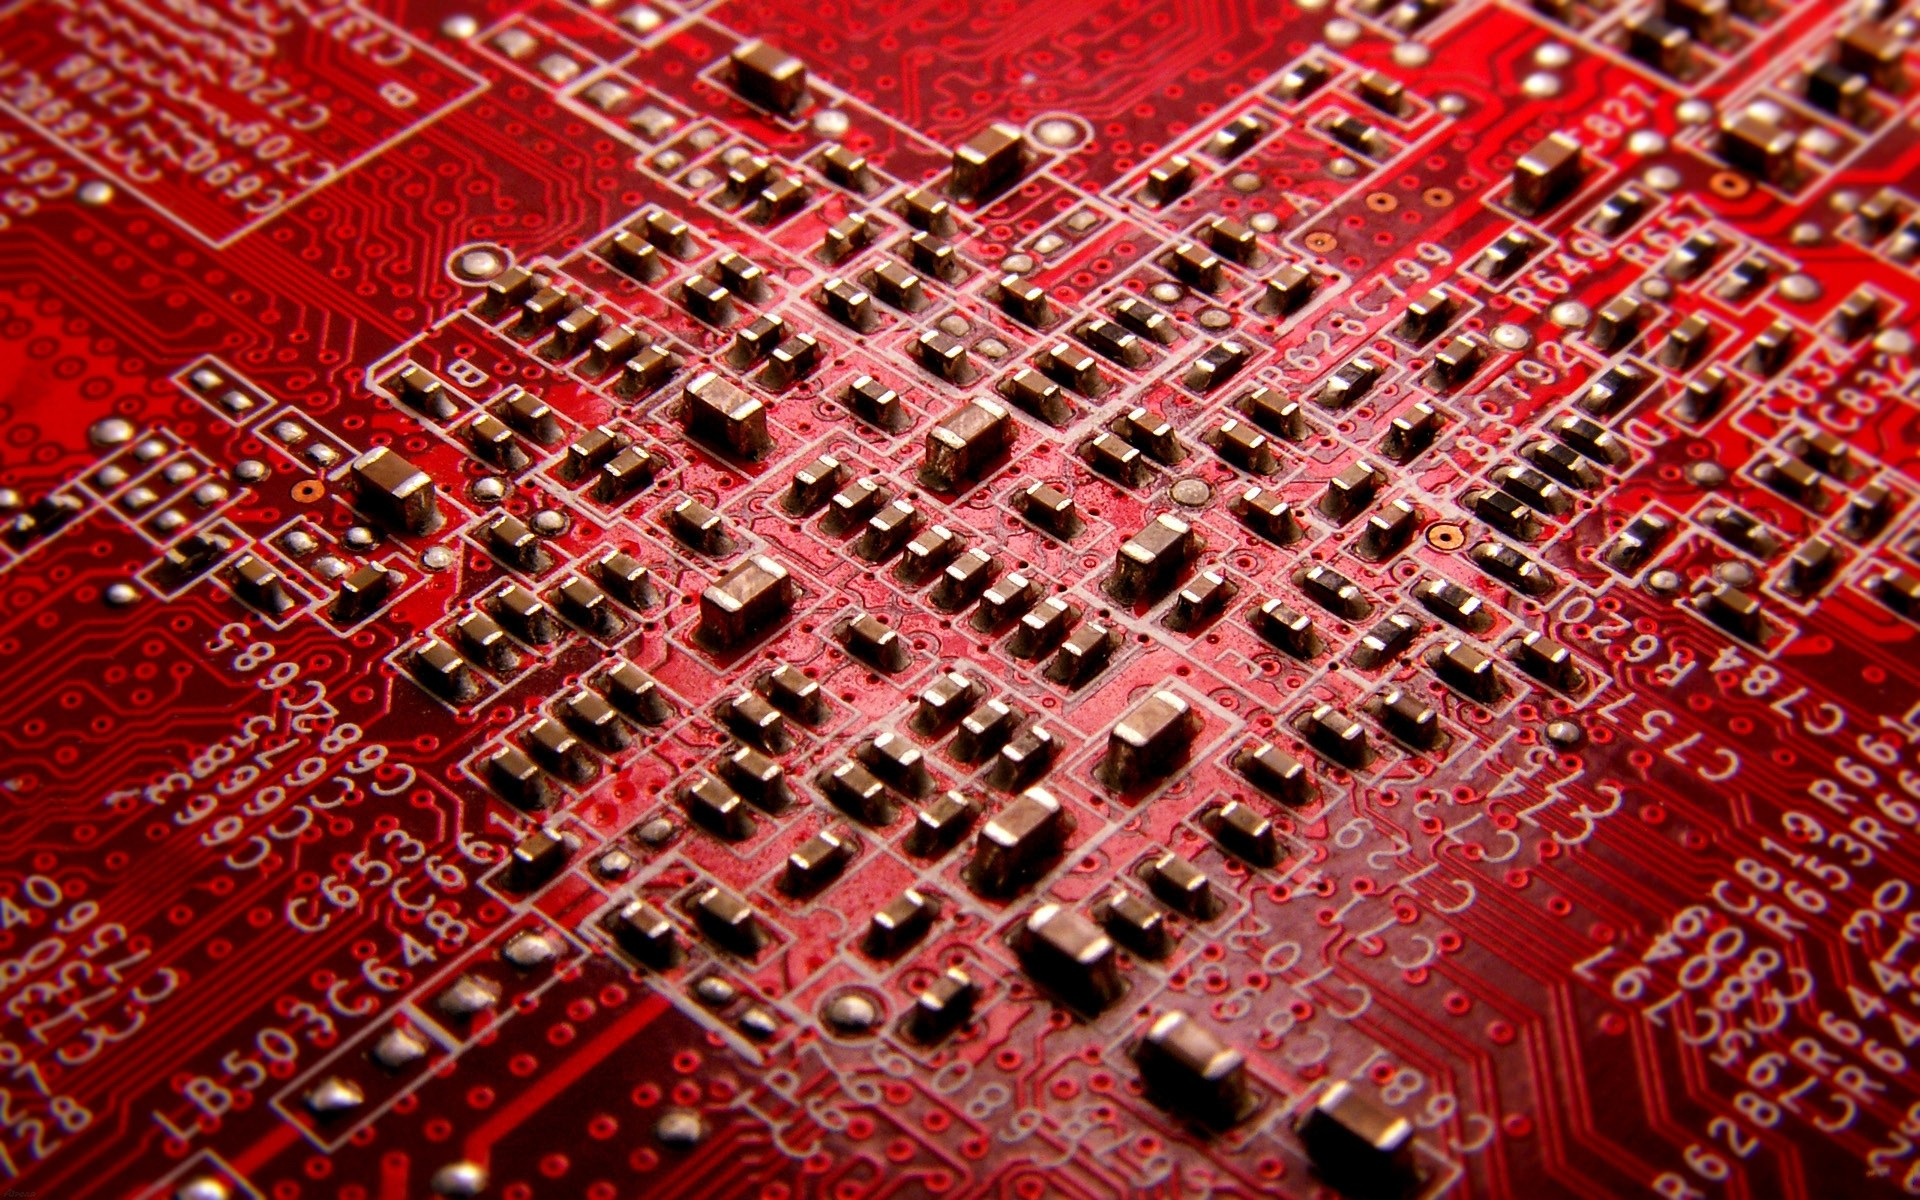 Chip computer technology wallpaper 1920x1200 10630 WallpaperUP 1920x1200